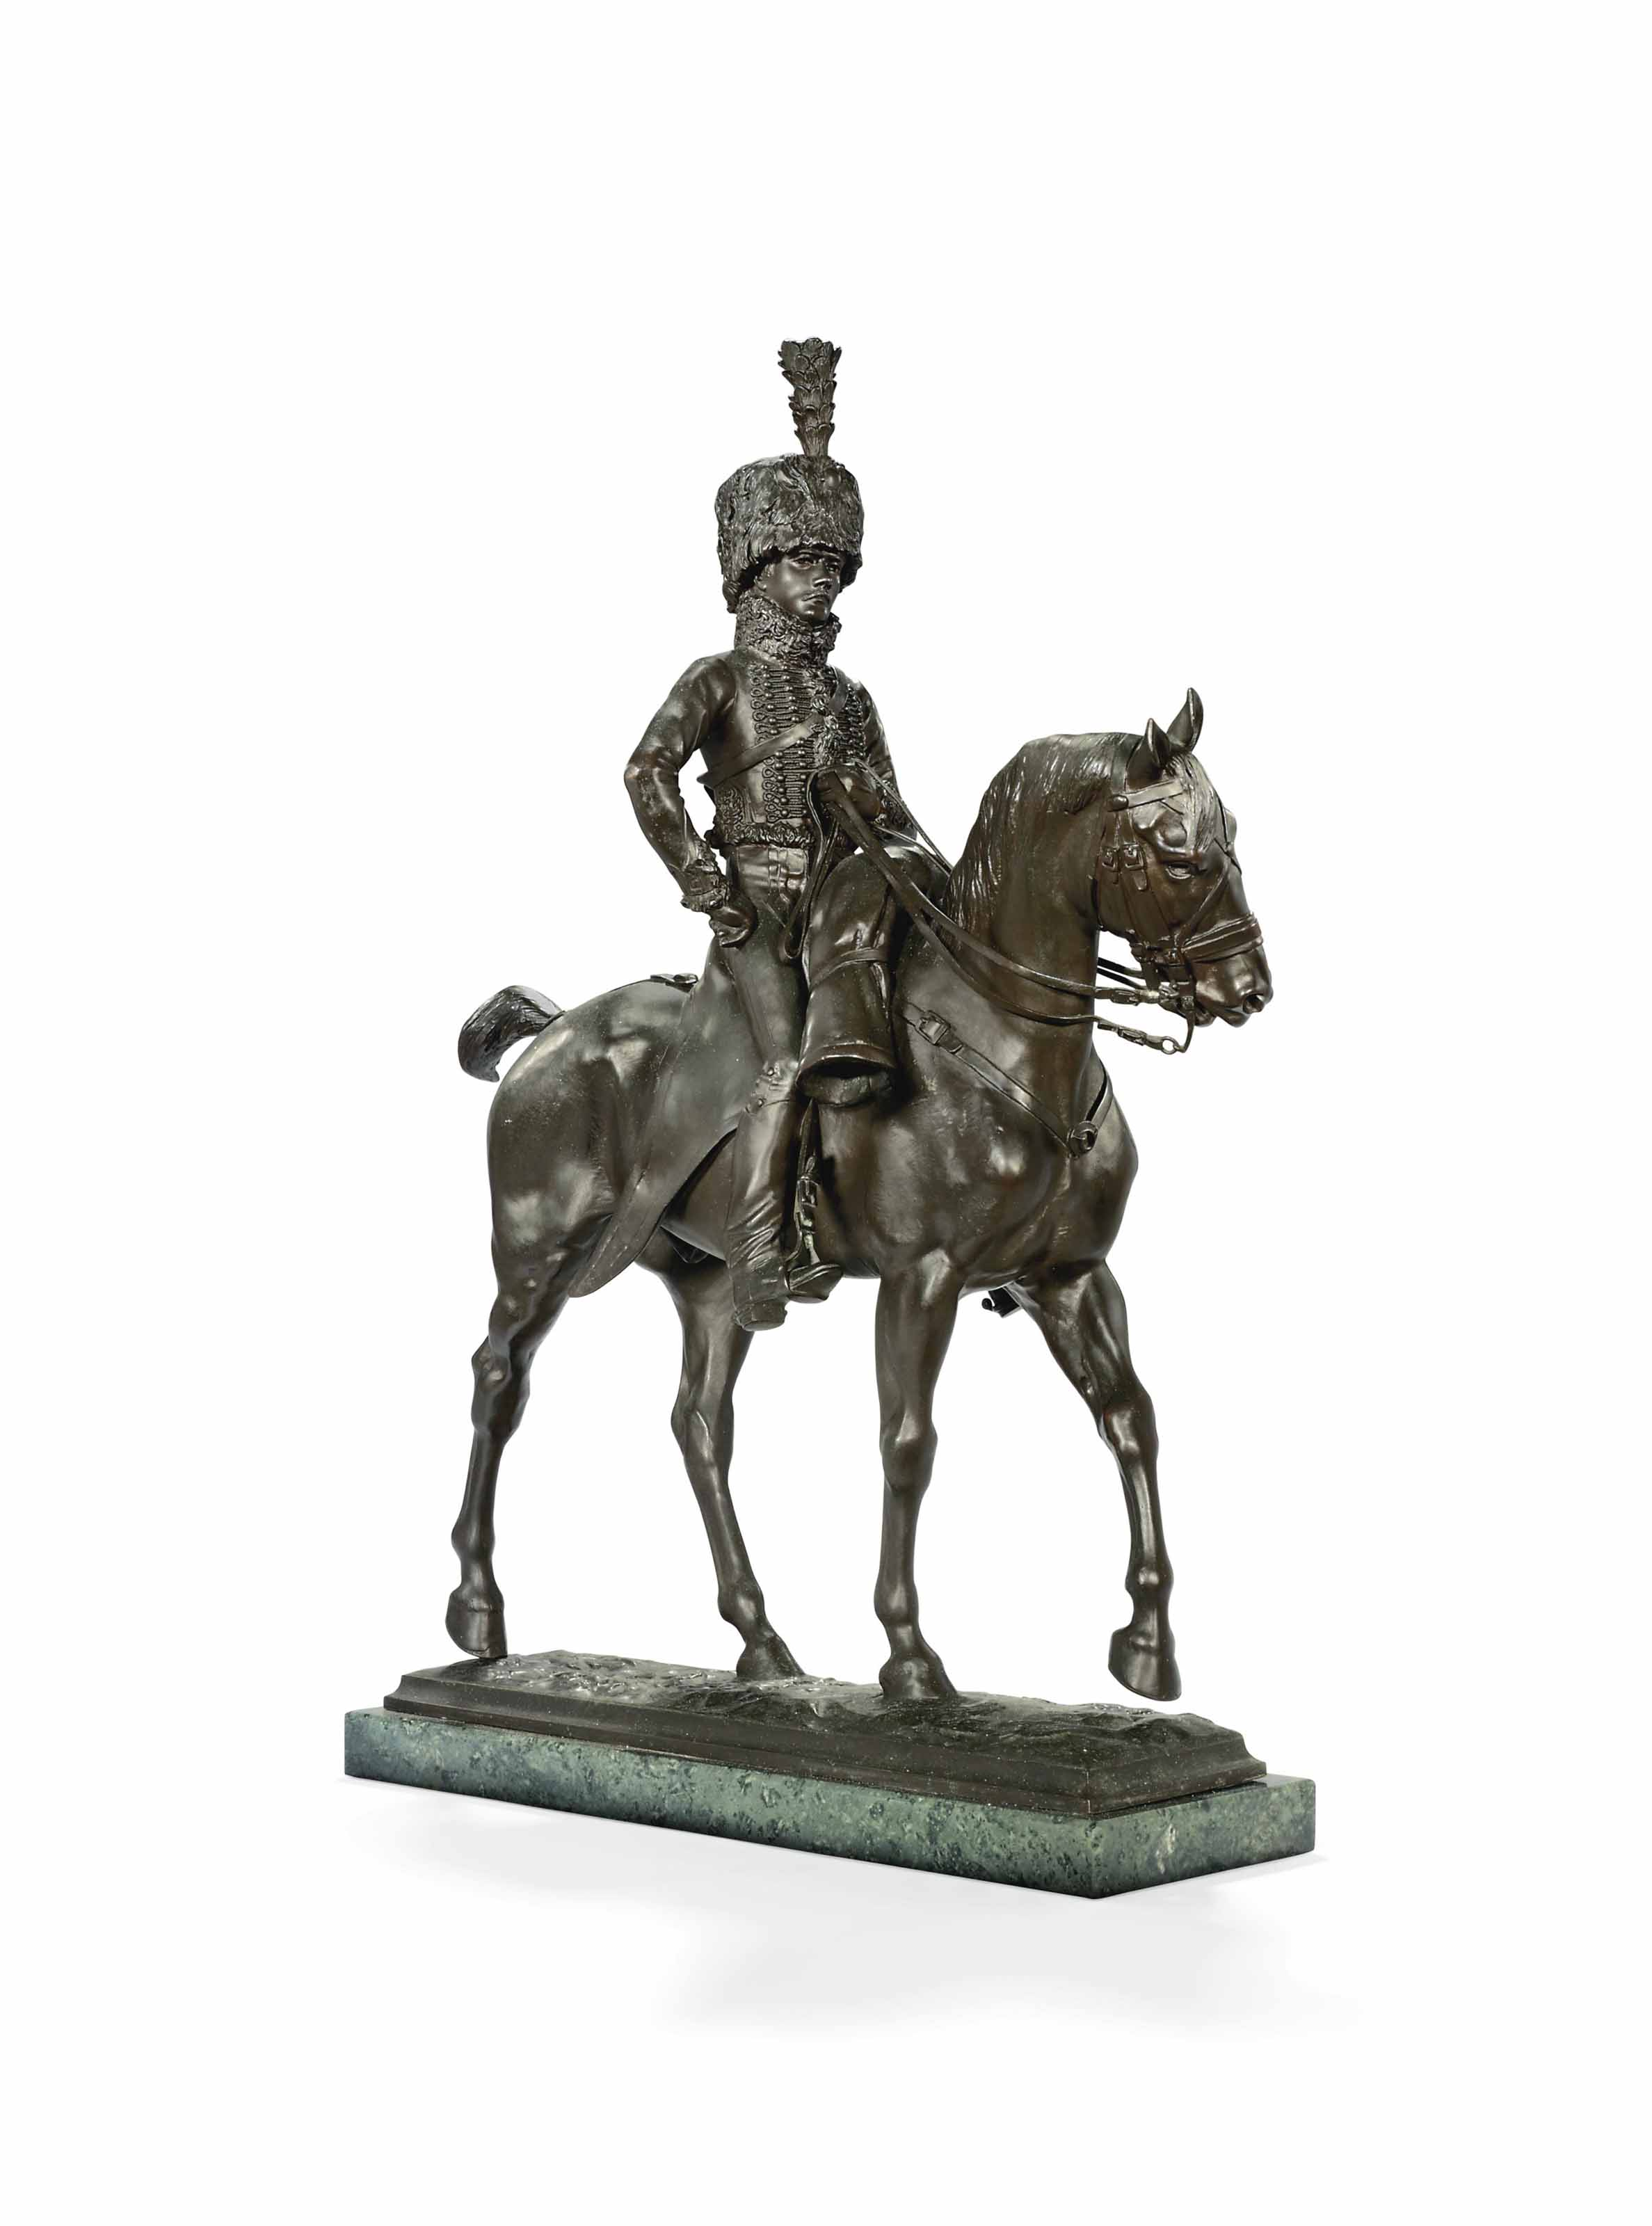 A BRONZE GROUP OF A HUSSAR ON HORSEBACK